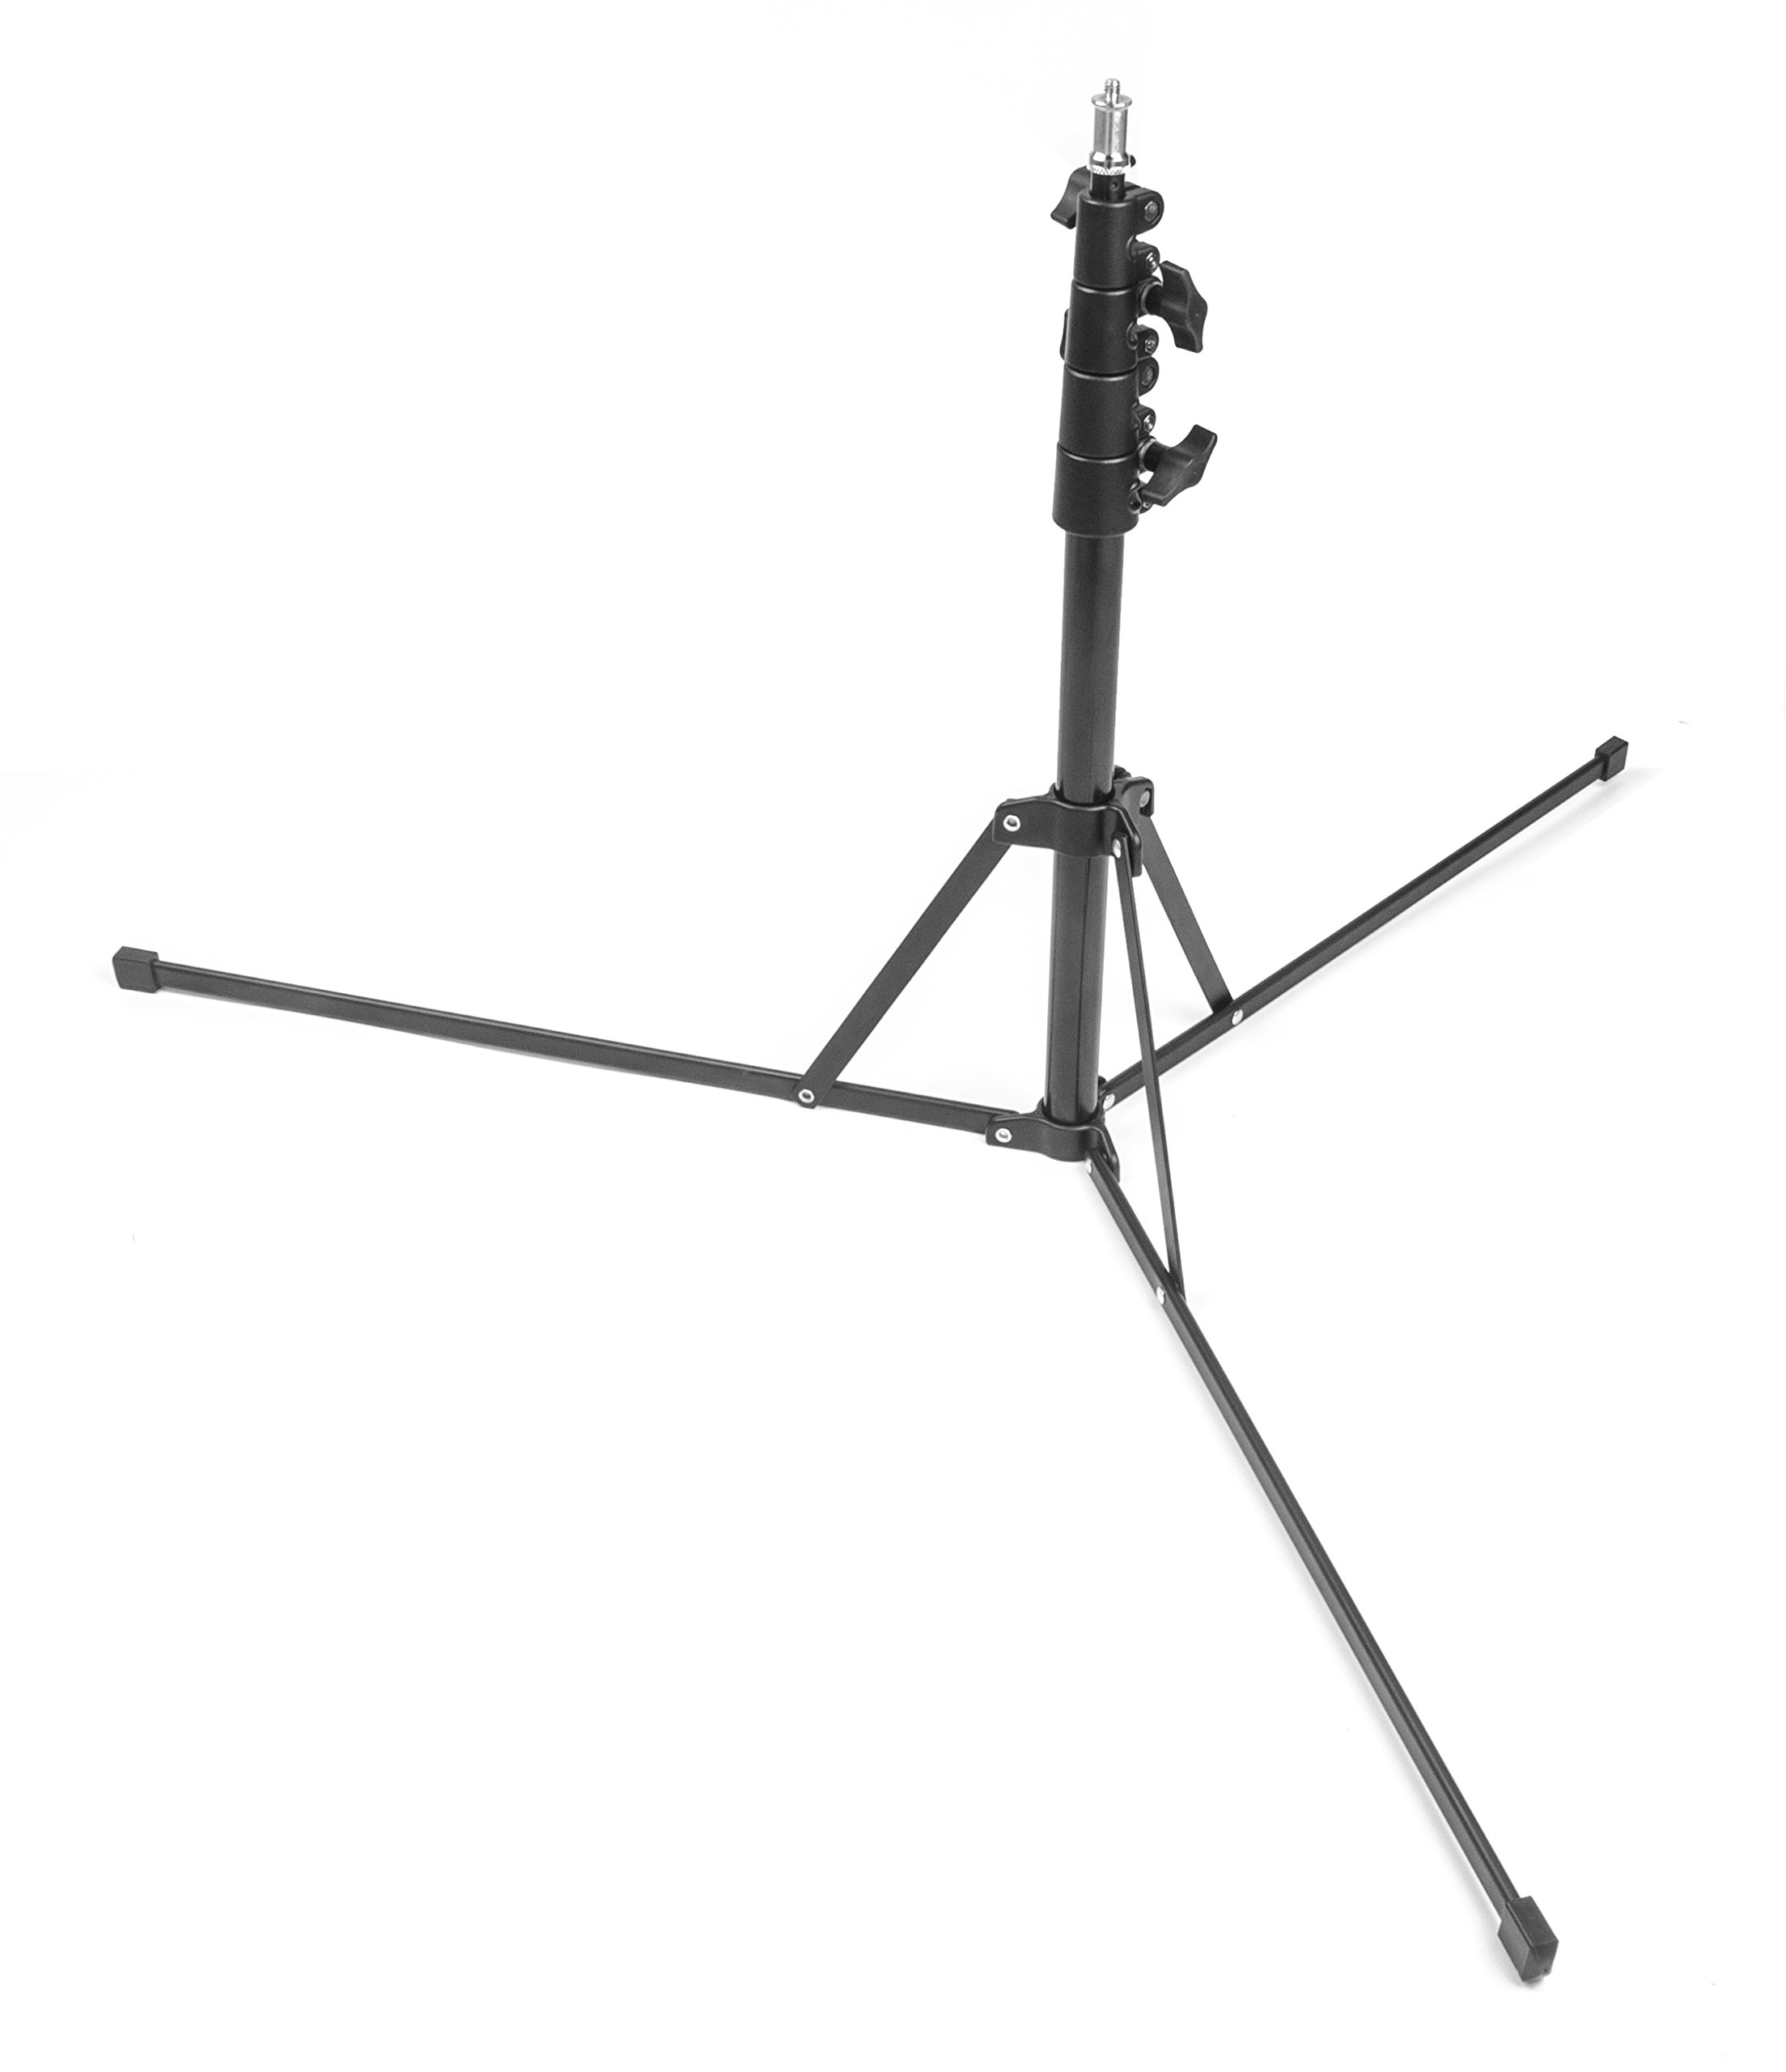 PHOCUS 7ft Compact Portable Reverse Legs Light Stand for Photography and Video Lighting by PHOCUS